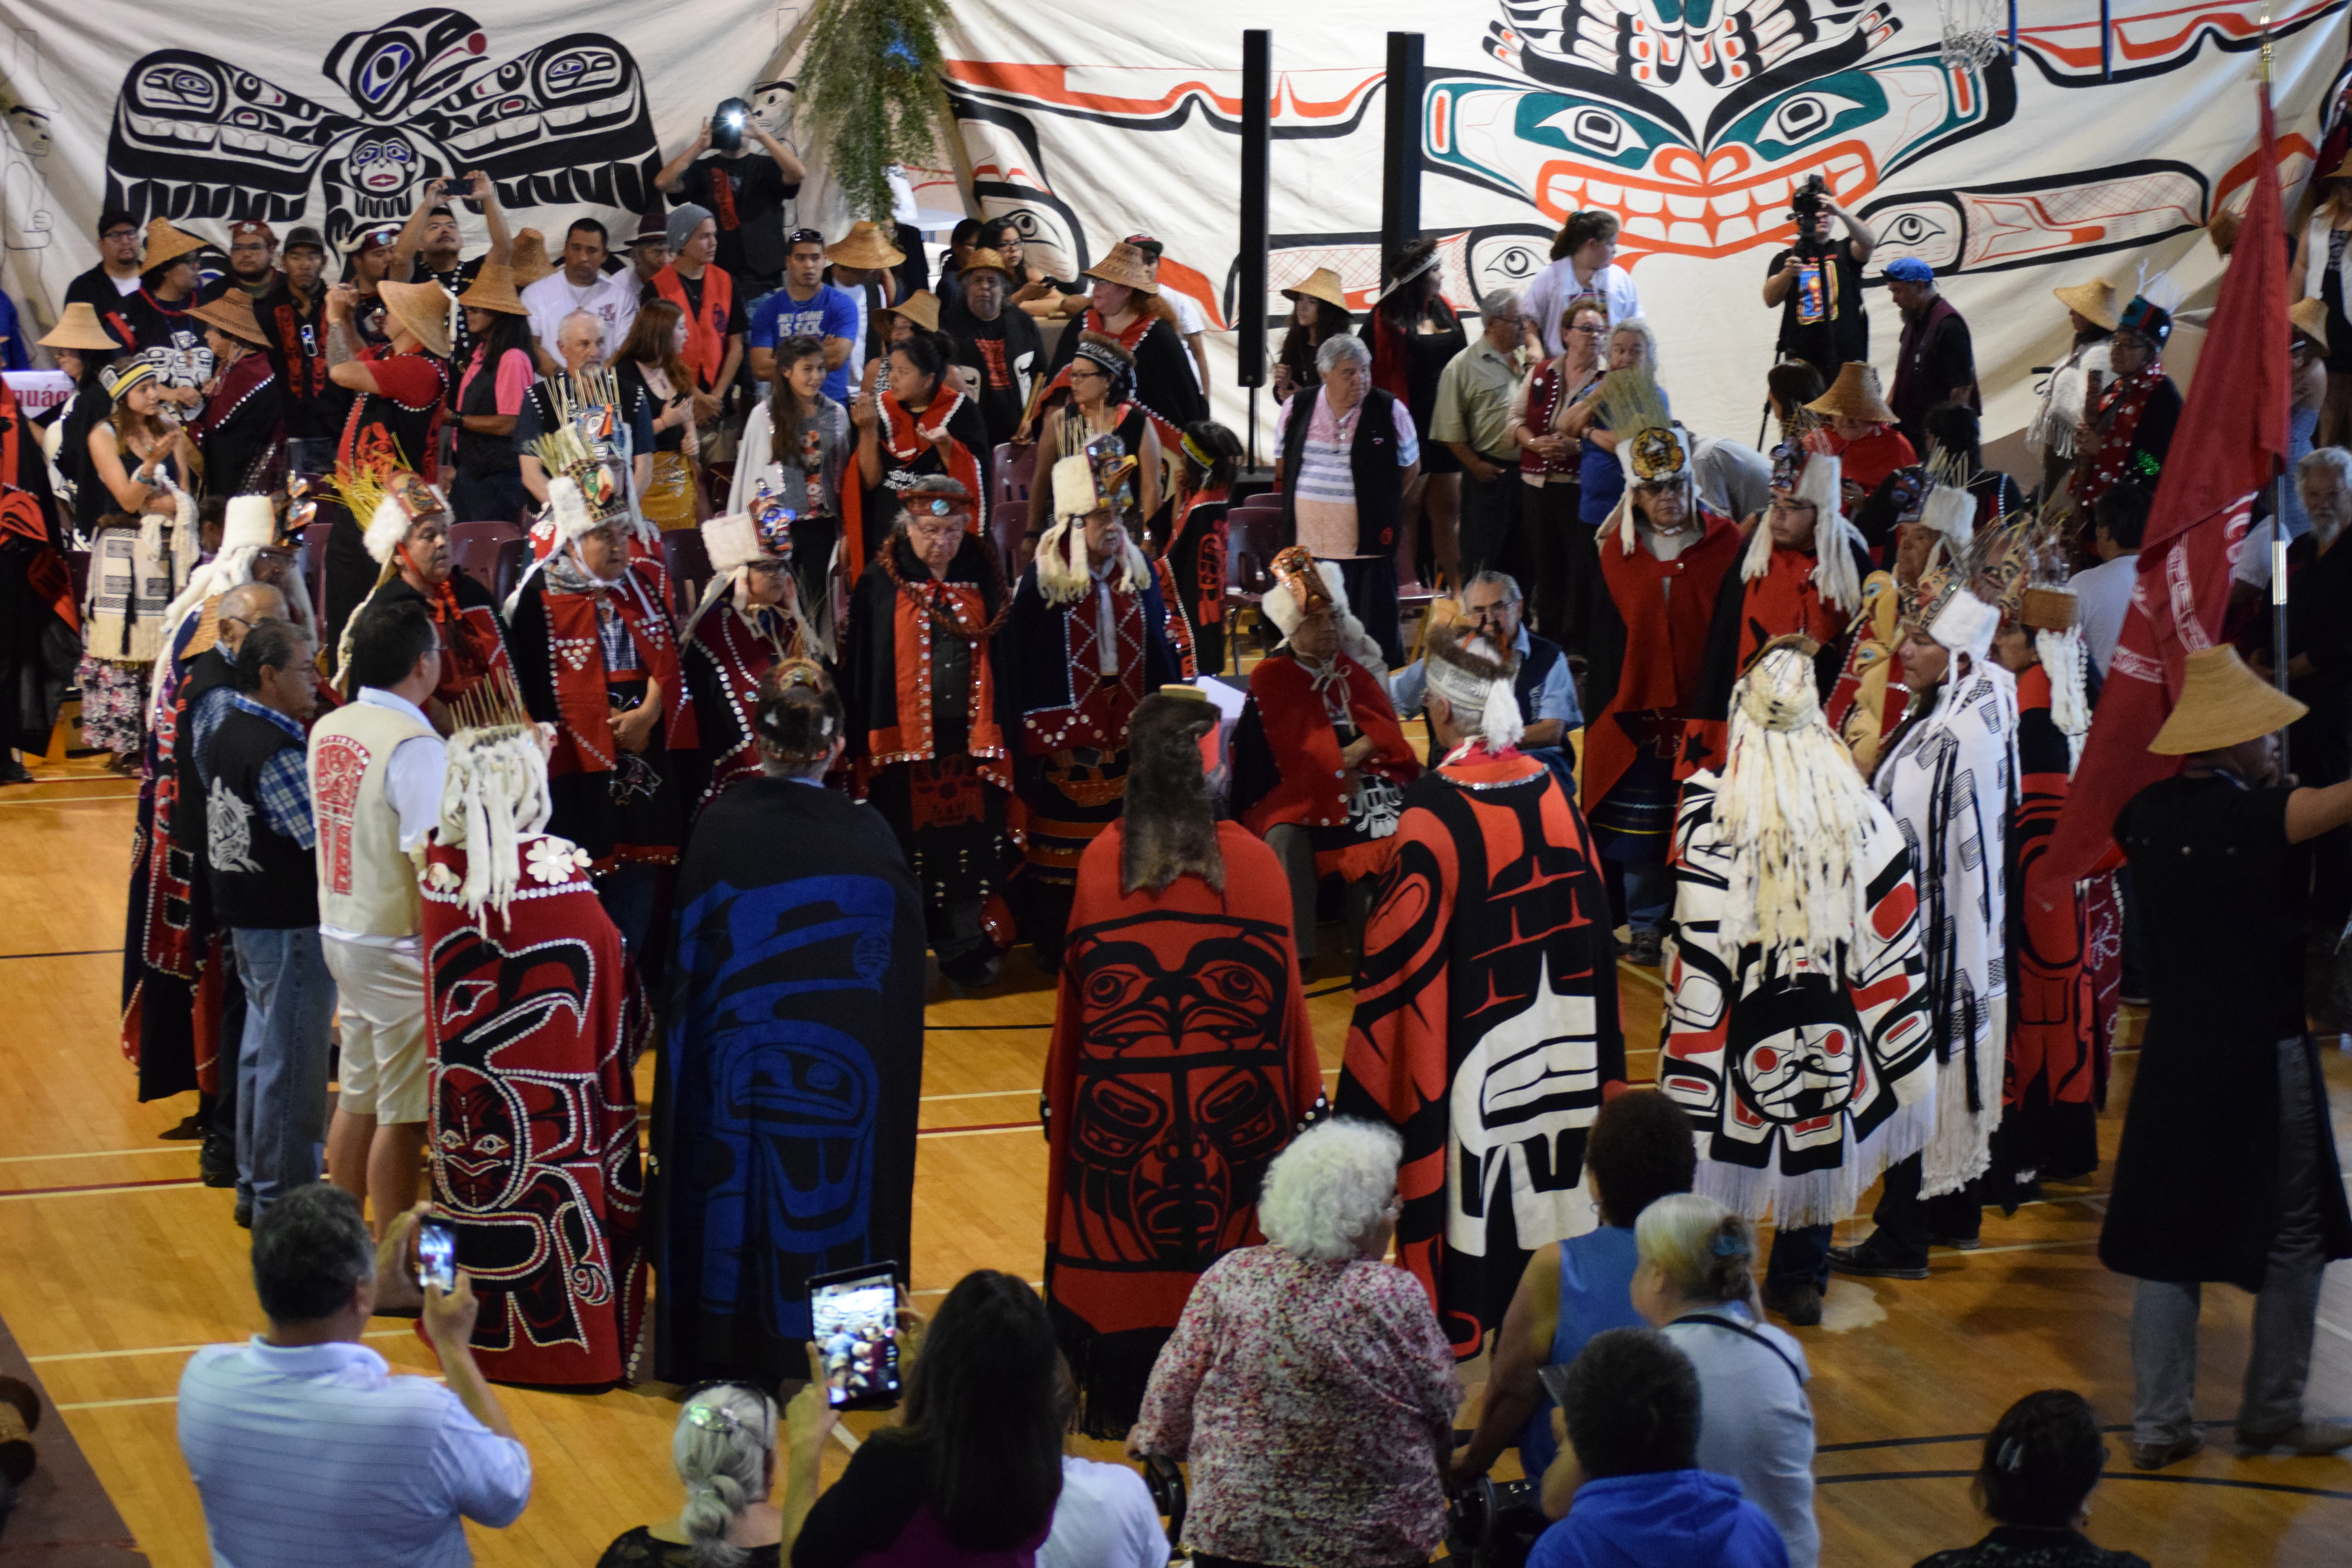 2 Haida and Heiltsuk hereditary leaders meet face to face in the centre of the potlatch floor